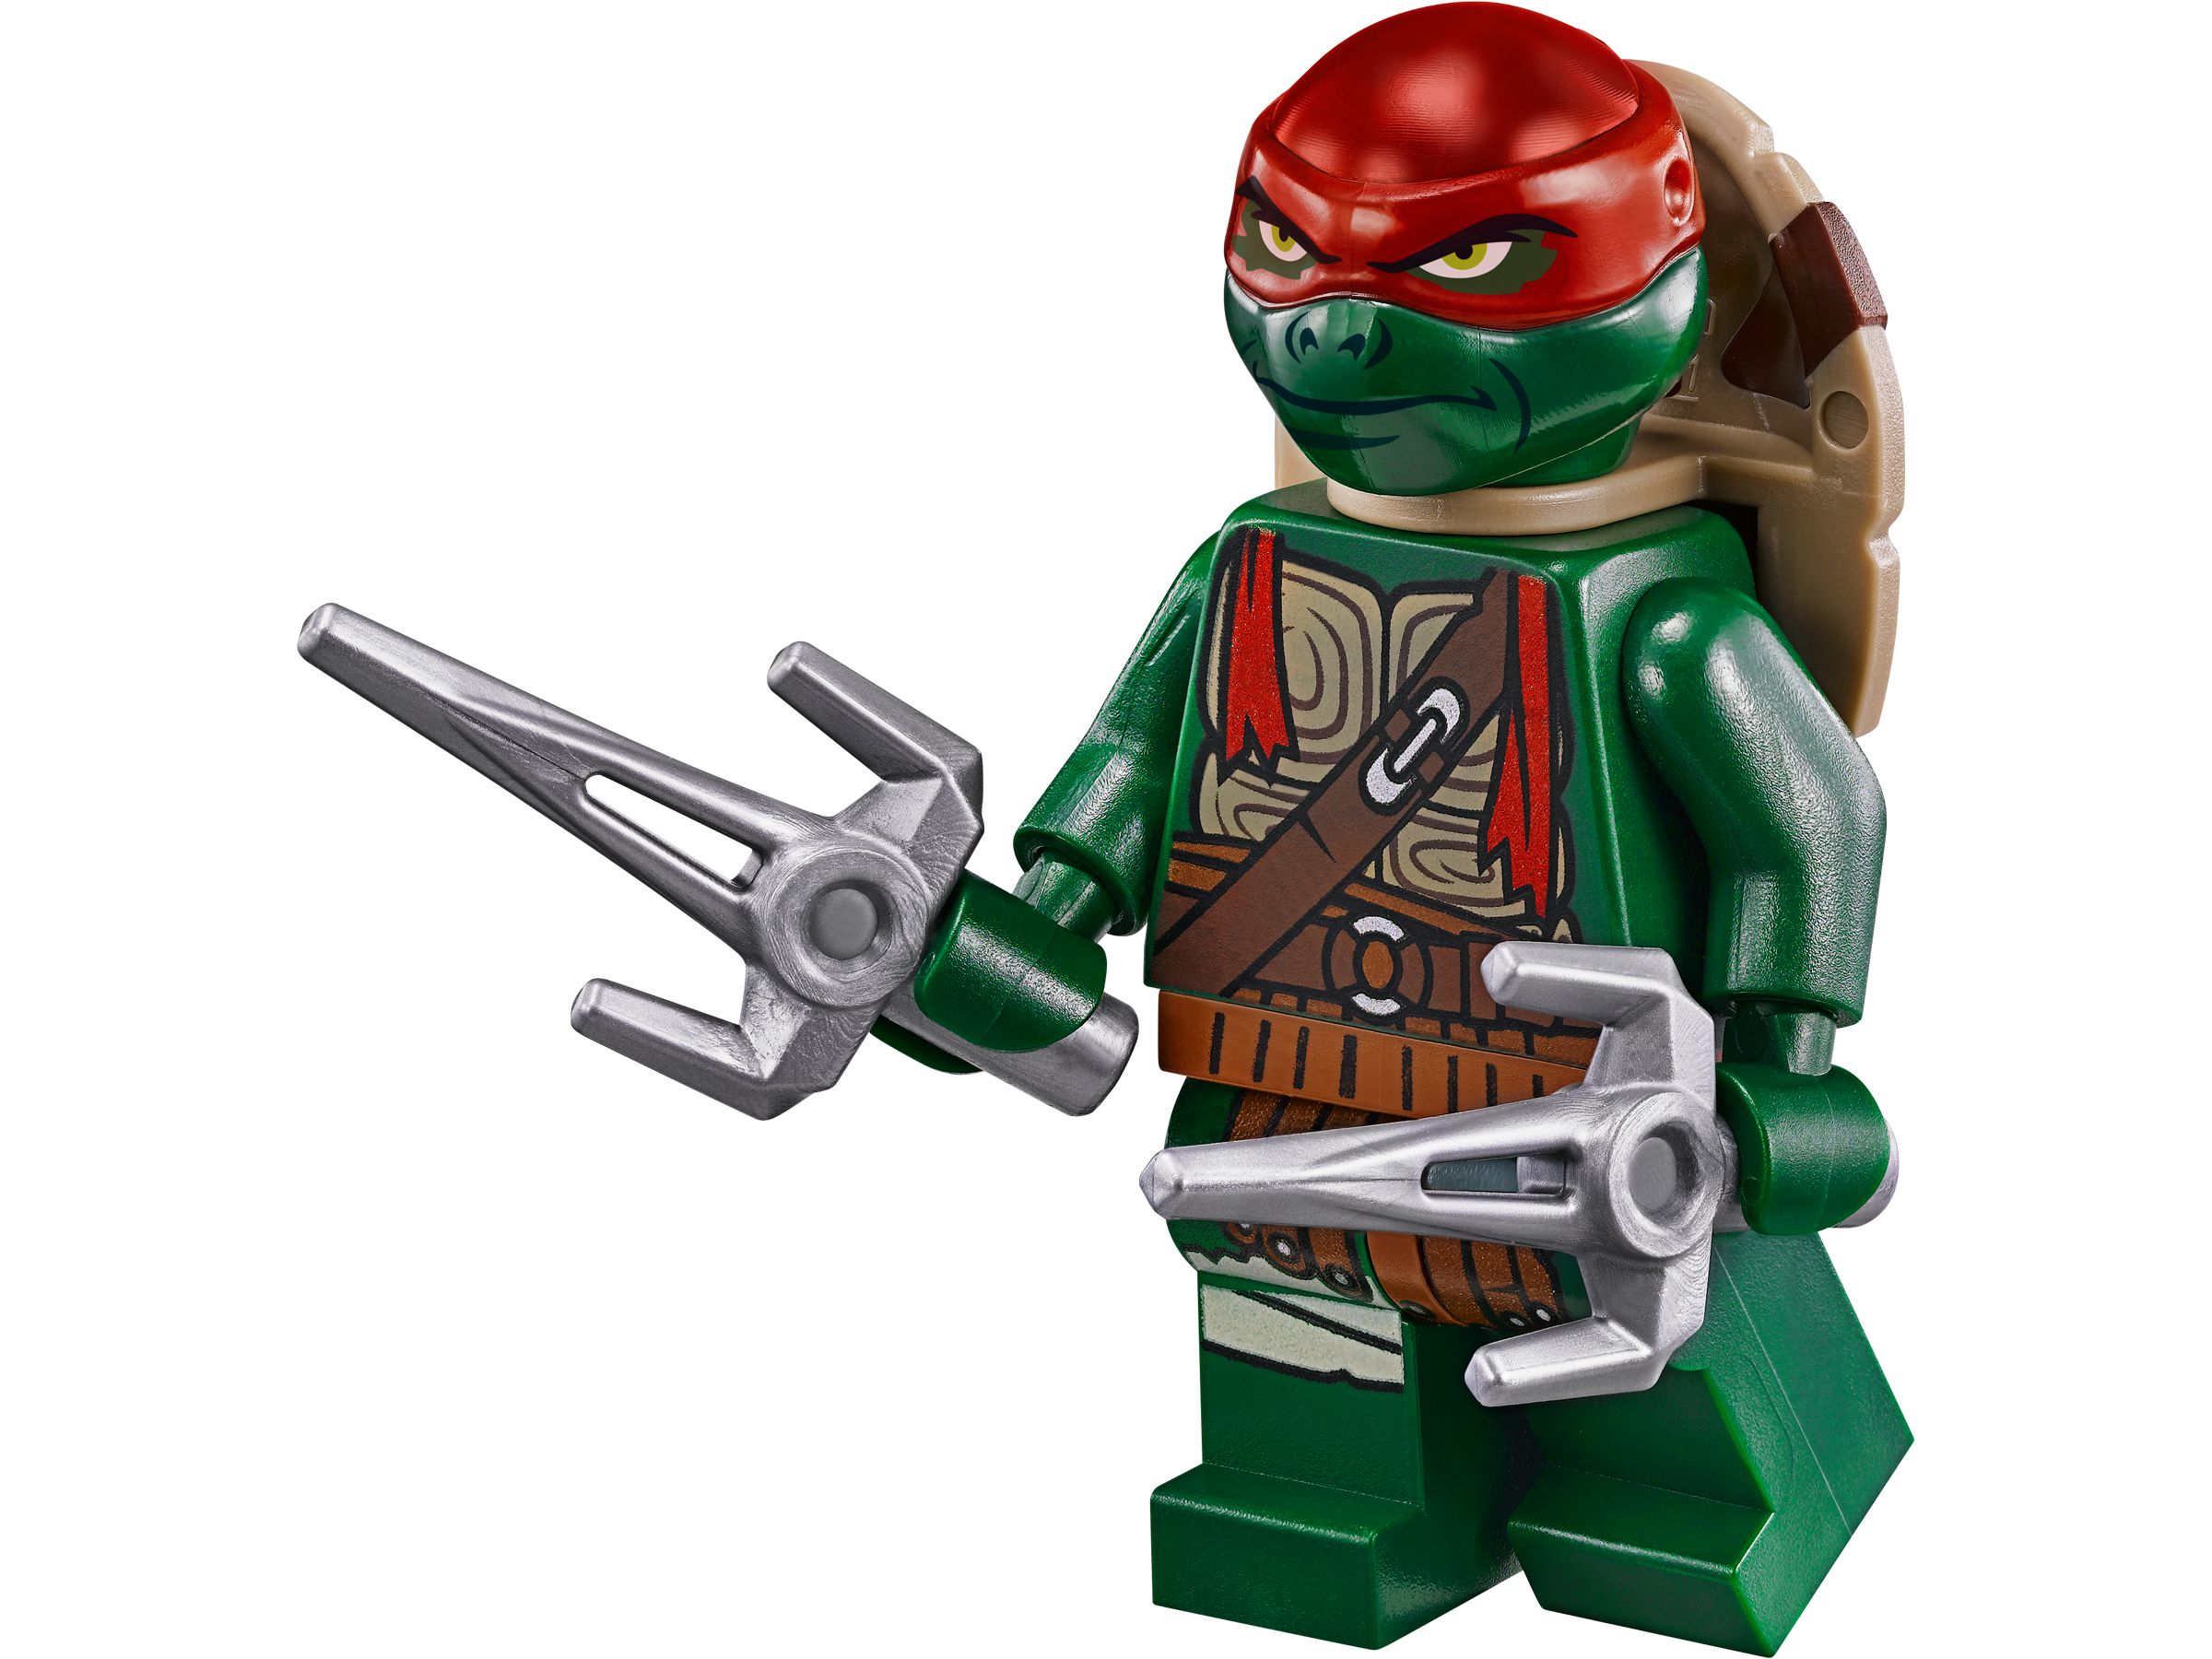 LEGO Teenage Mutant Ninja Turtles 79115 Turtle Van LEGO_79115_alt9.jpg